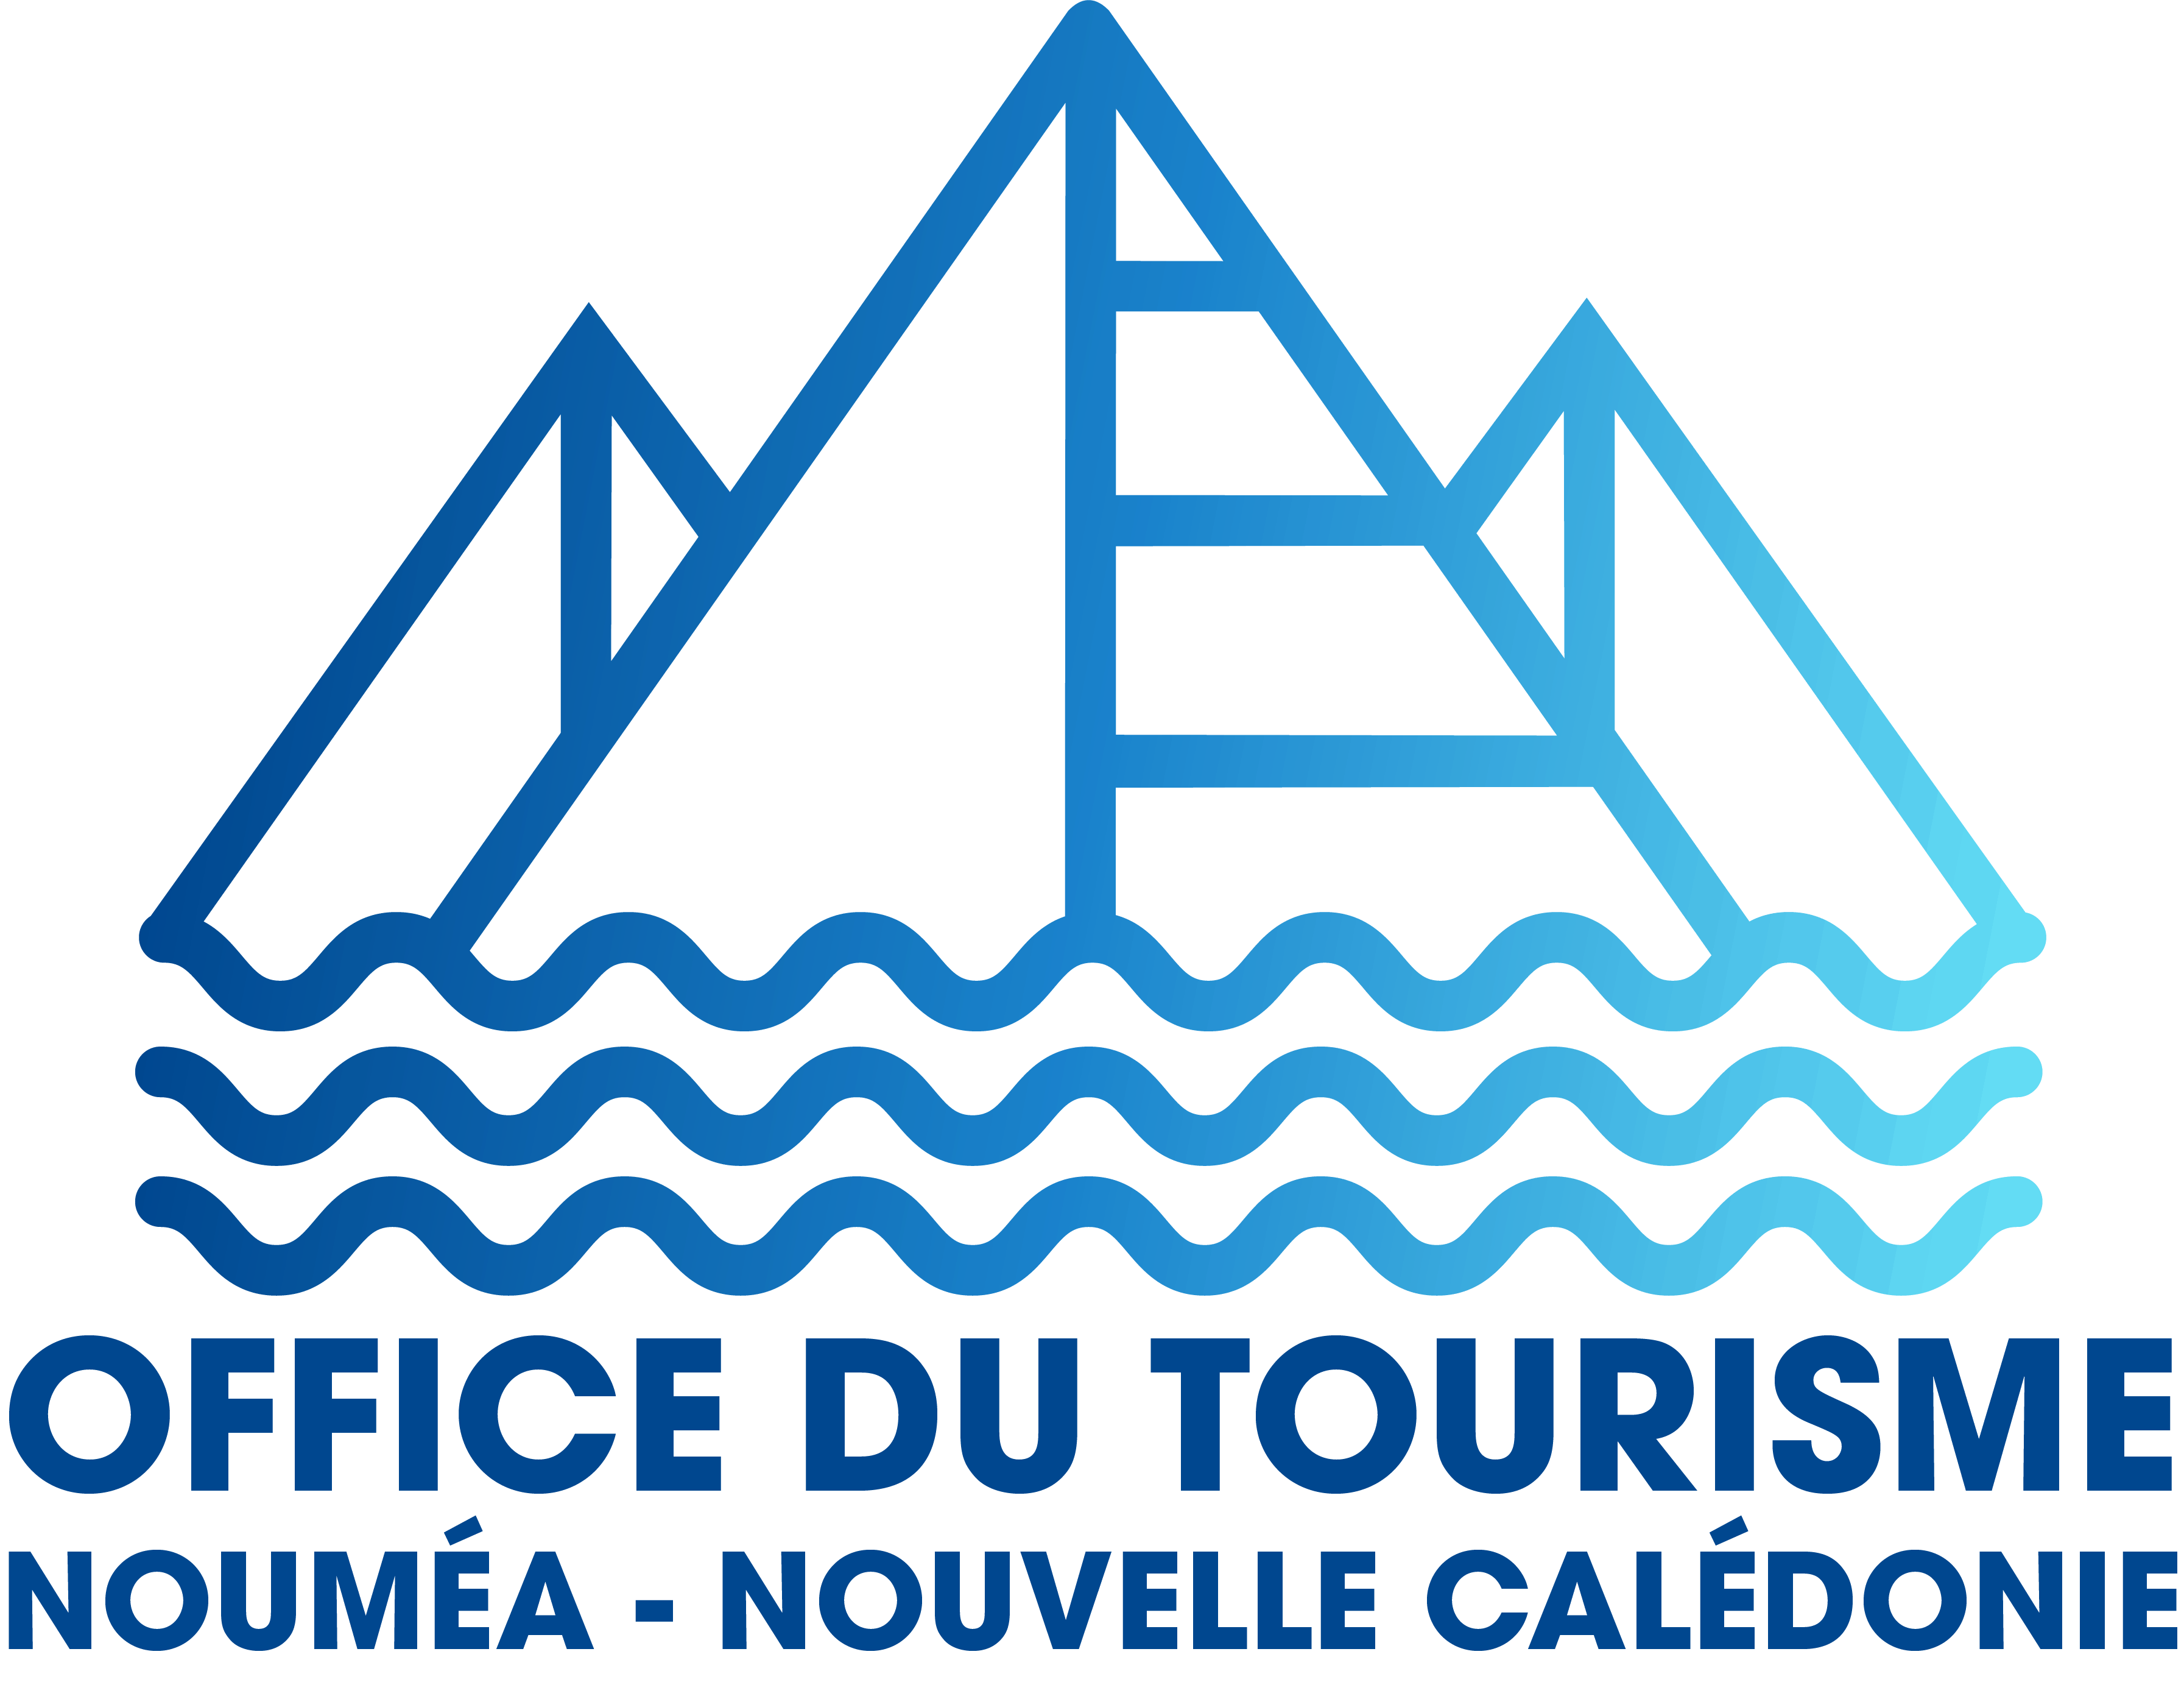 logo office du tourisme noumea